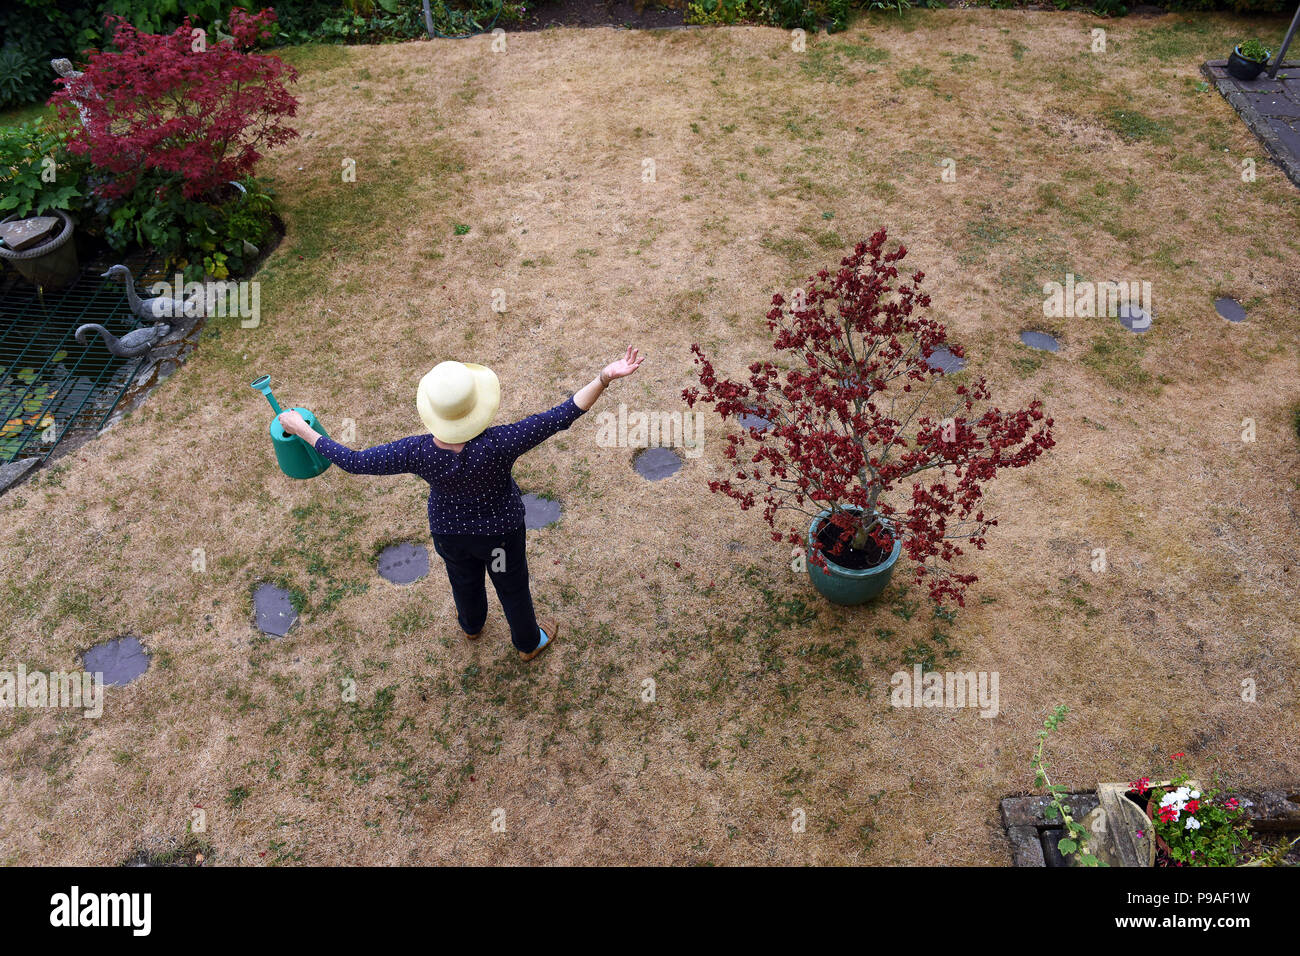 A gardener desperate for rain on her parched lawn in Telford, Shropshire, Uk - Stock Image